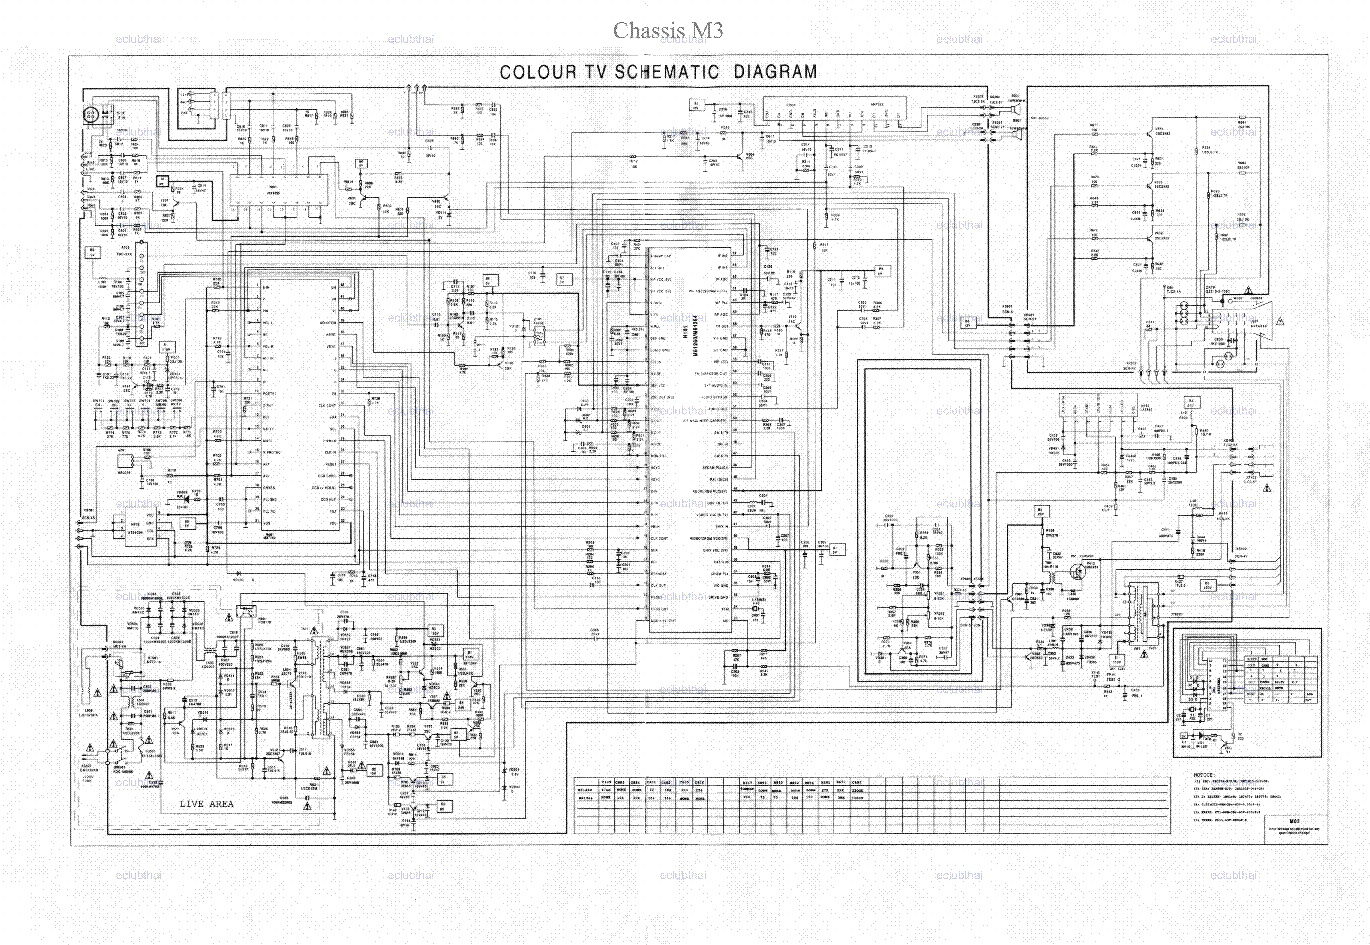 China Tv Chassis Diagram Search For Wiring Diagrams Electronics Repair Made Easy Chanwong Tvchina See Circuit Below Ph06vs Crt Sch Service Manual Download Schematics Rh Elektrotanya Com Car Frame Intermodal Container